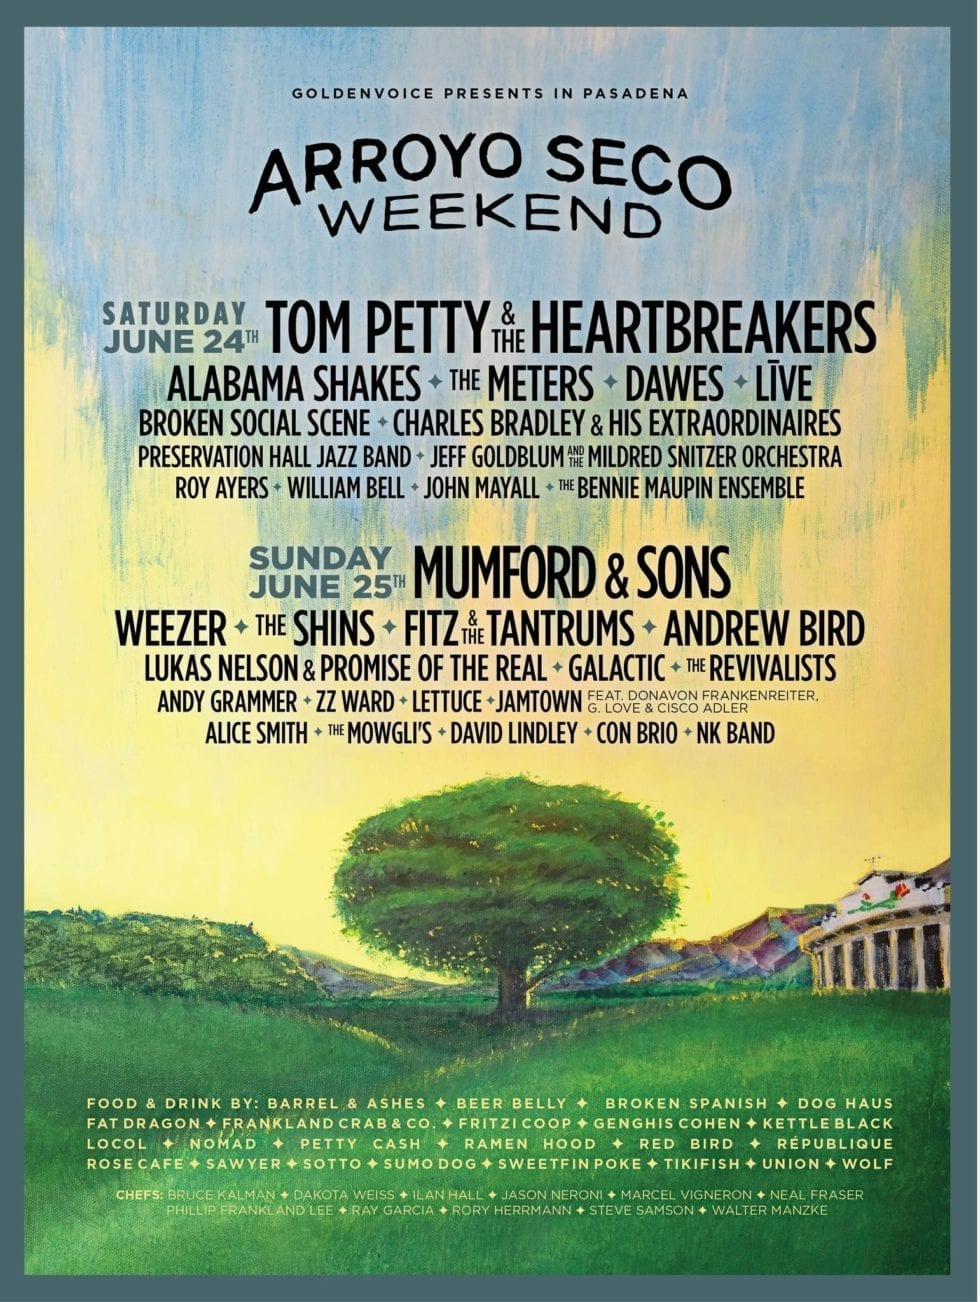 Arroyo Seco Weekend 2017 Festival Poster